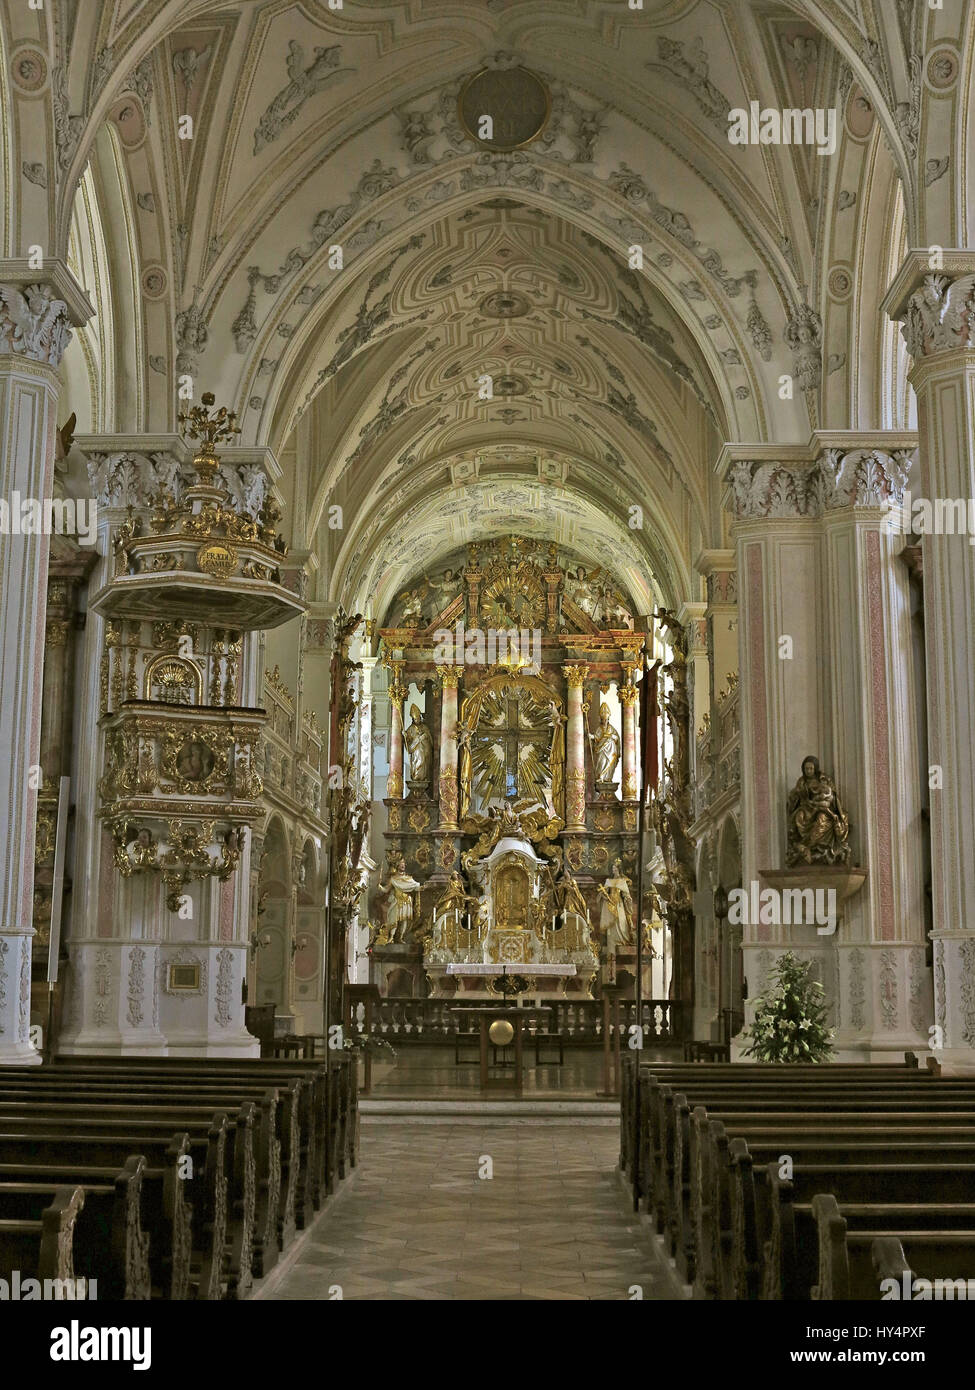 Polling Collegiate Church Hl Kreuz Interior Gothic Architecture Early Baroque Design Stucco By JArg Schmuzer School Of Wessobrunn High Altar